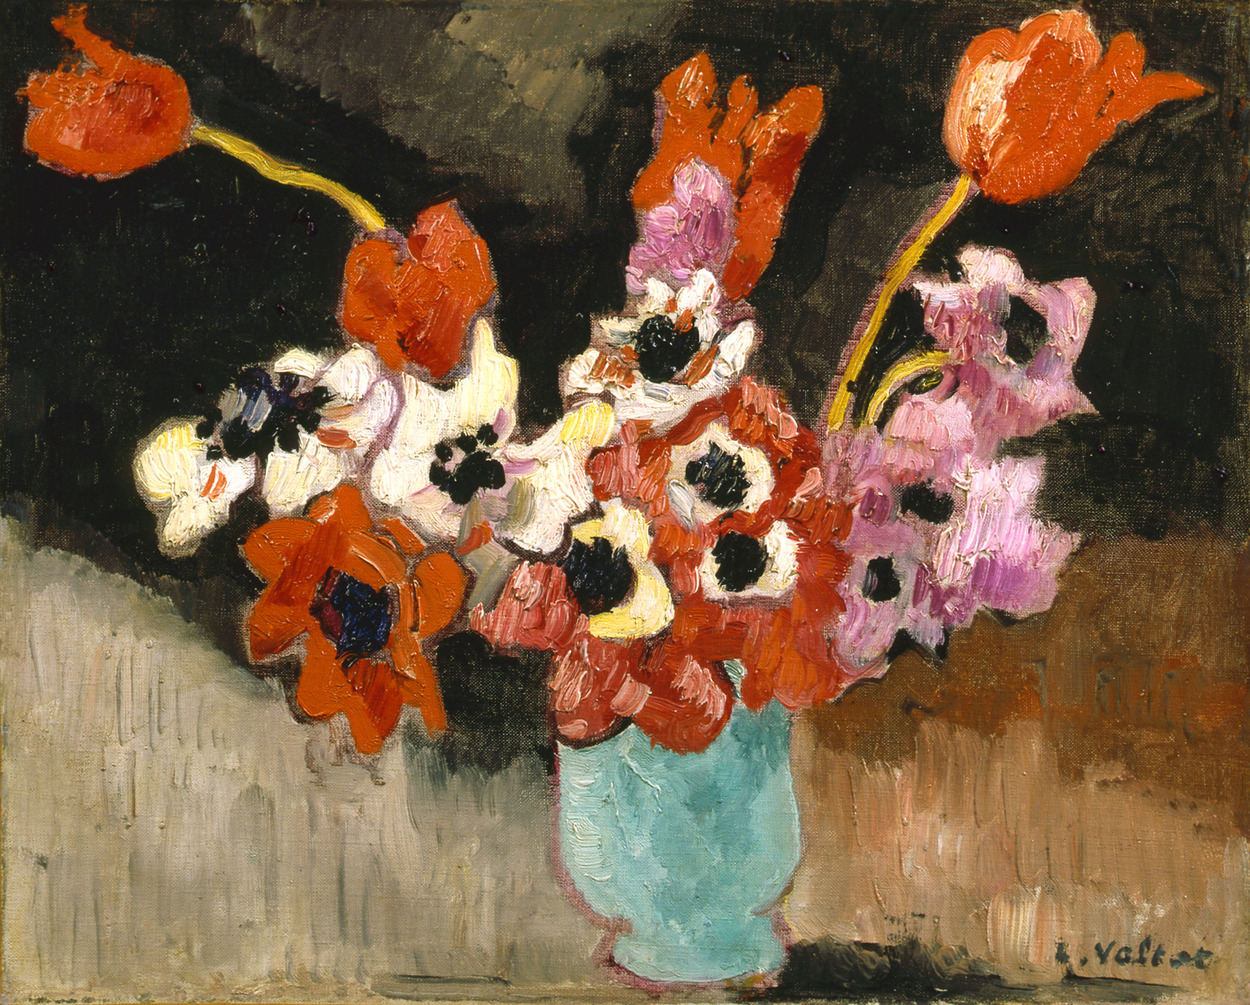 Schiller Amp Bodo Artists Louis Valtat French 1869 1952 Artworks Blue Vase Anemones